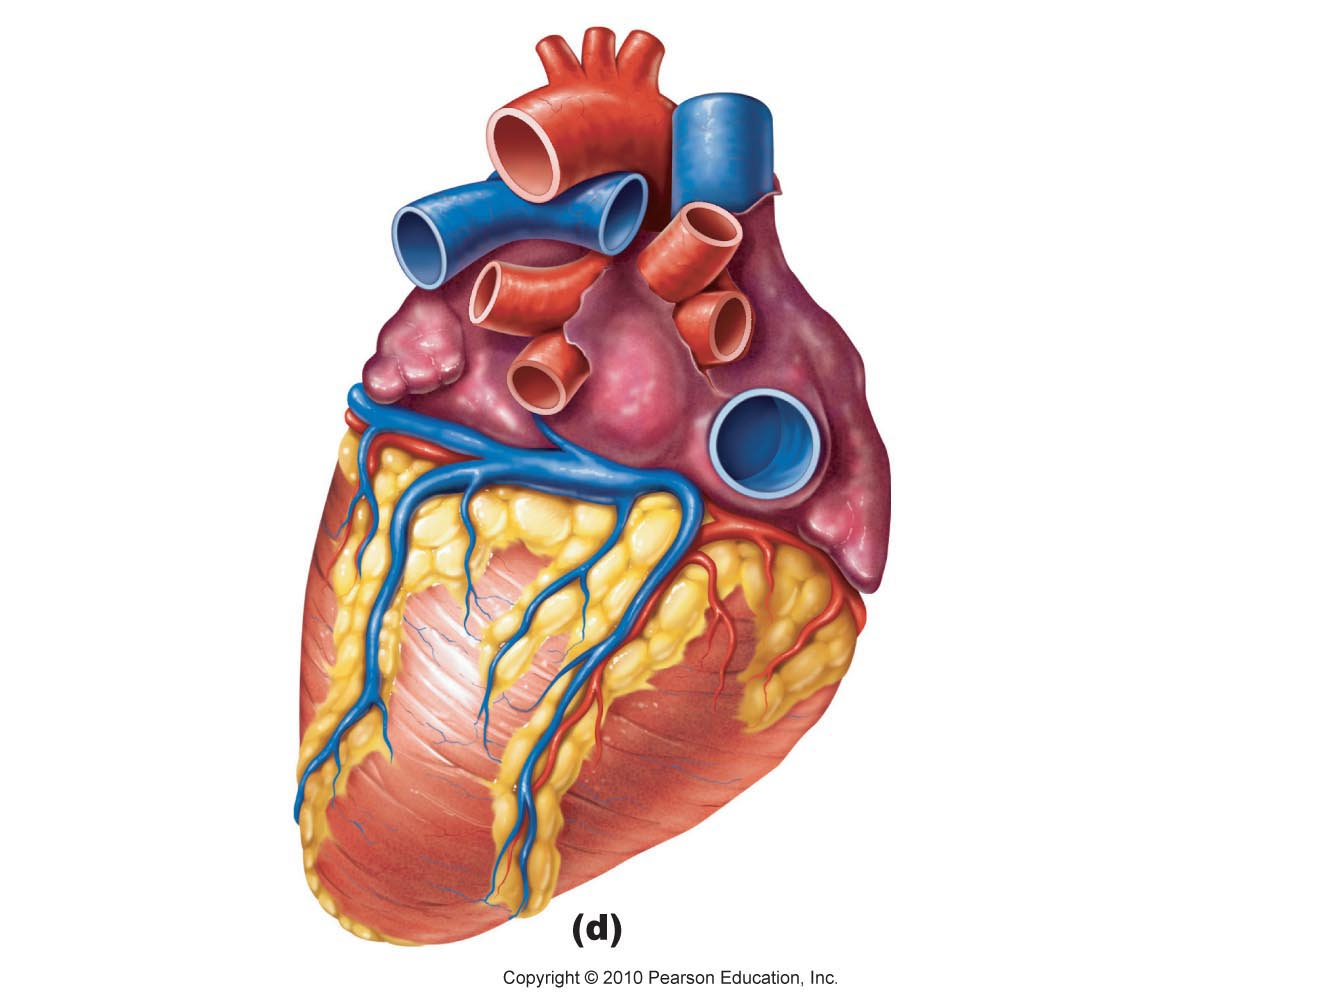 Human Heart Images